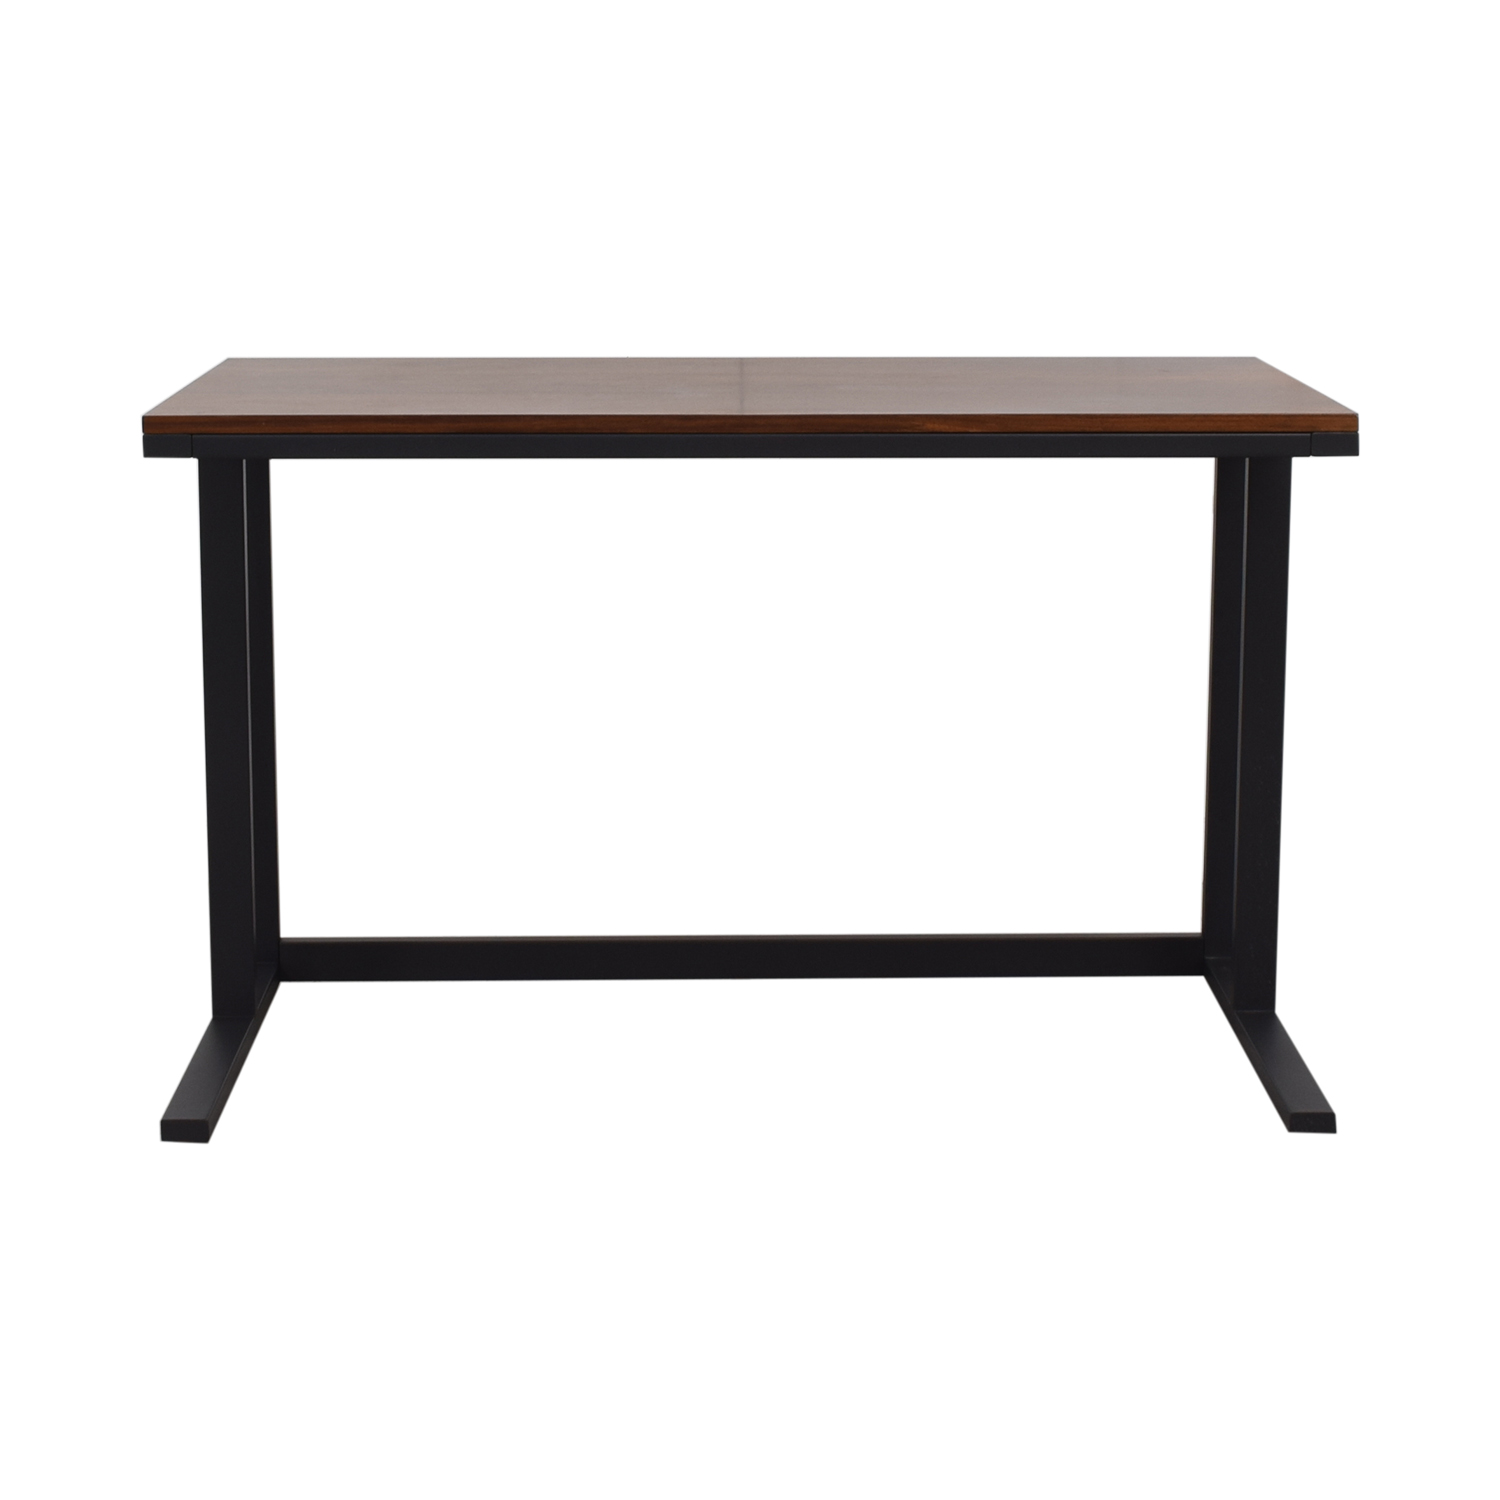 Crate & Barrel Crate & Barrel Pilsen Graphite Desk Dark Brown